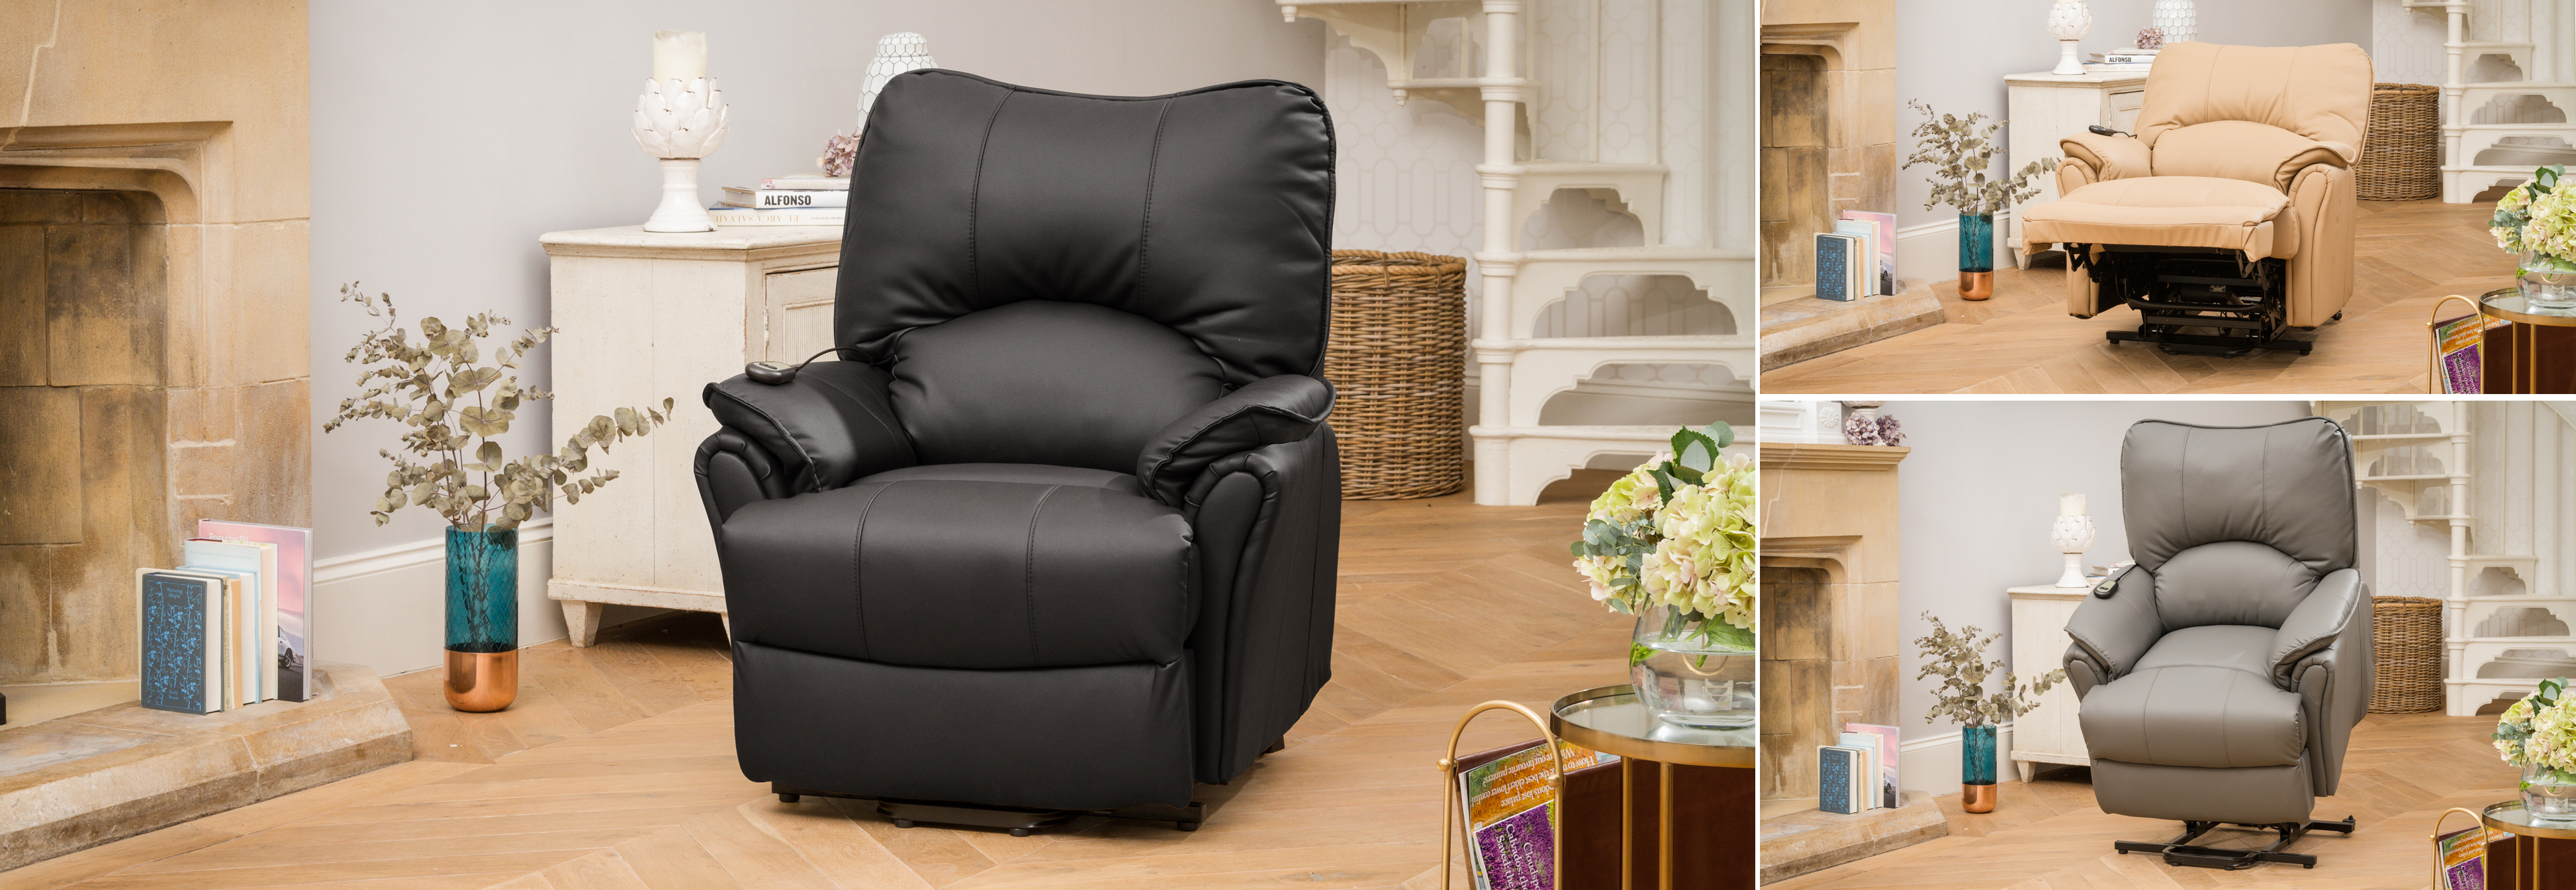 Eastleigh Riser Recliner Chair with Heat & Massage black